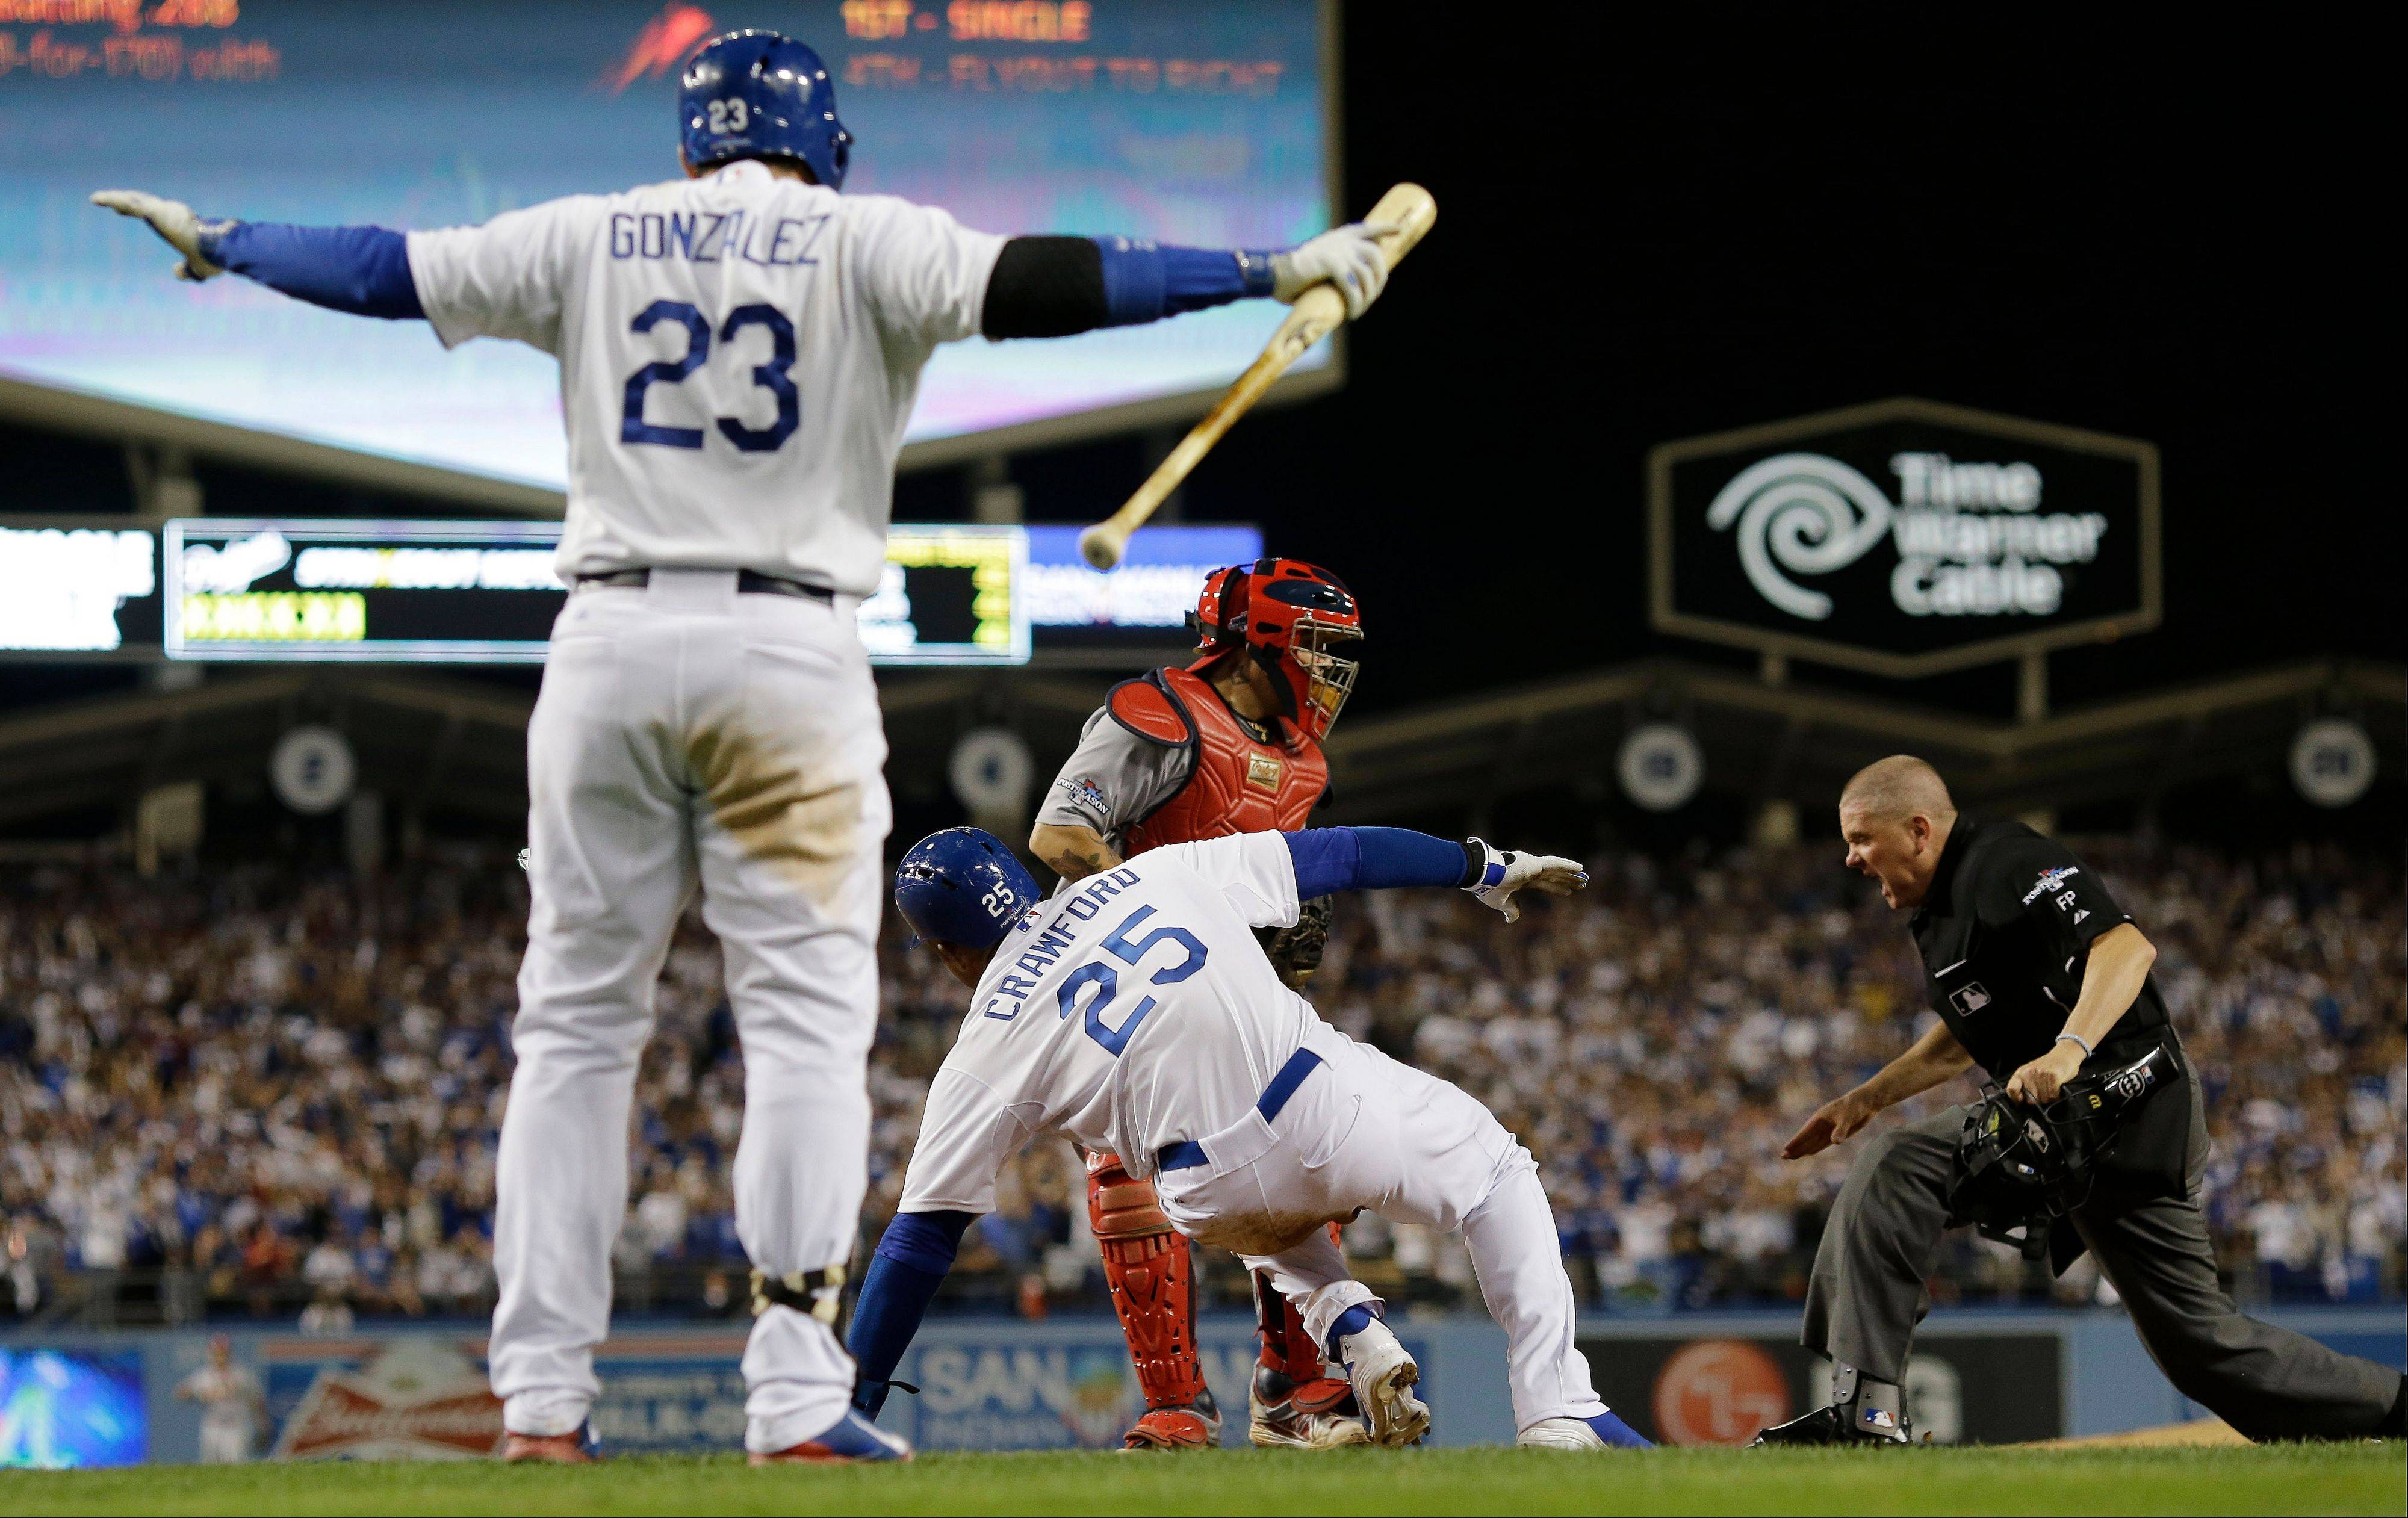 Los Angeles Dodgers' Adrian Gonzalez (23) reacts as Carl Crawford slides safely past St. Louis Cardinals catcher Yadier Molina during the eighth inning of Game 3 of the National League baseball championship series Monday in Los Angeles.